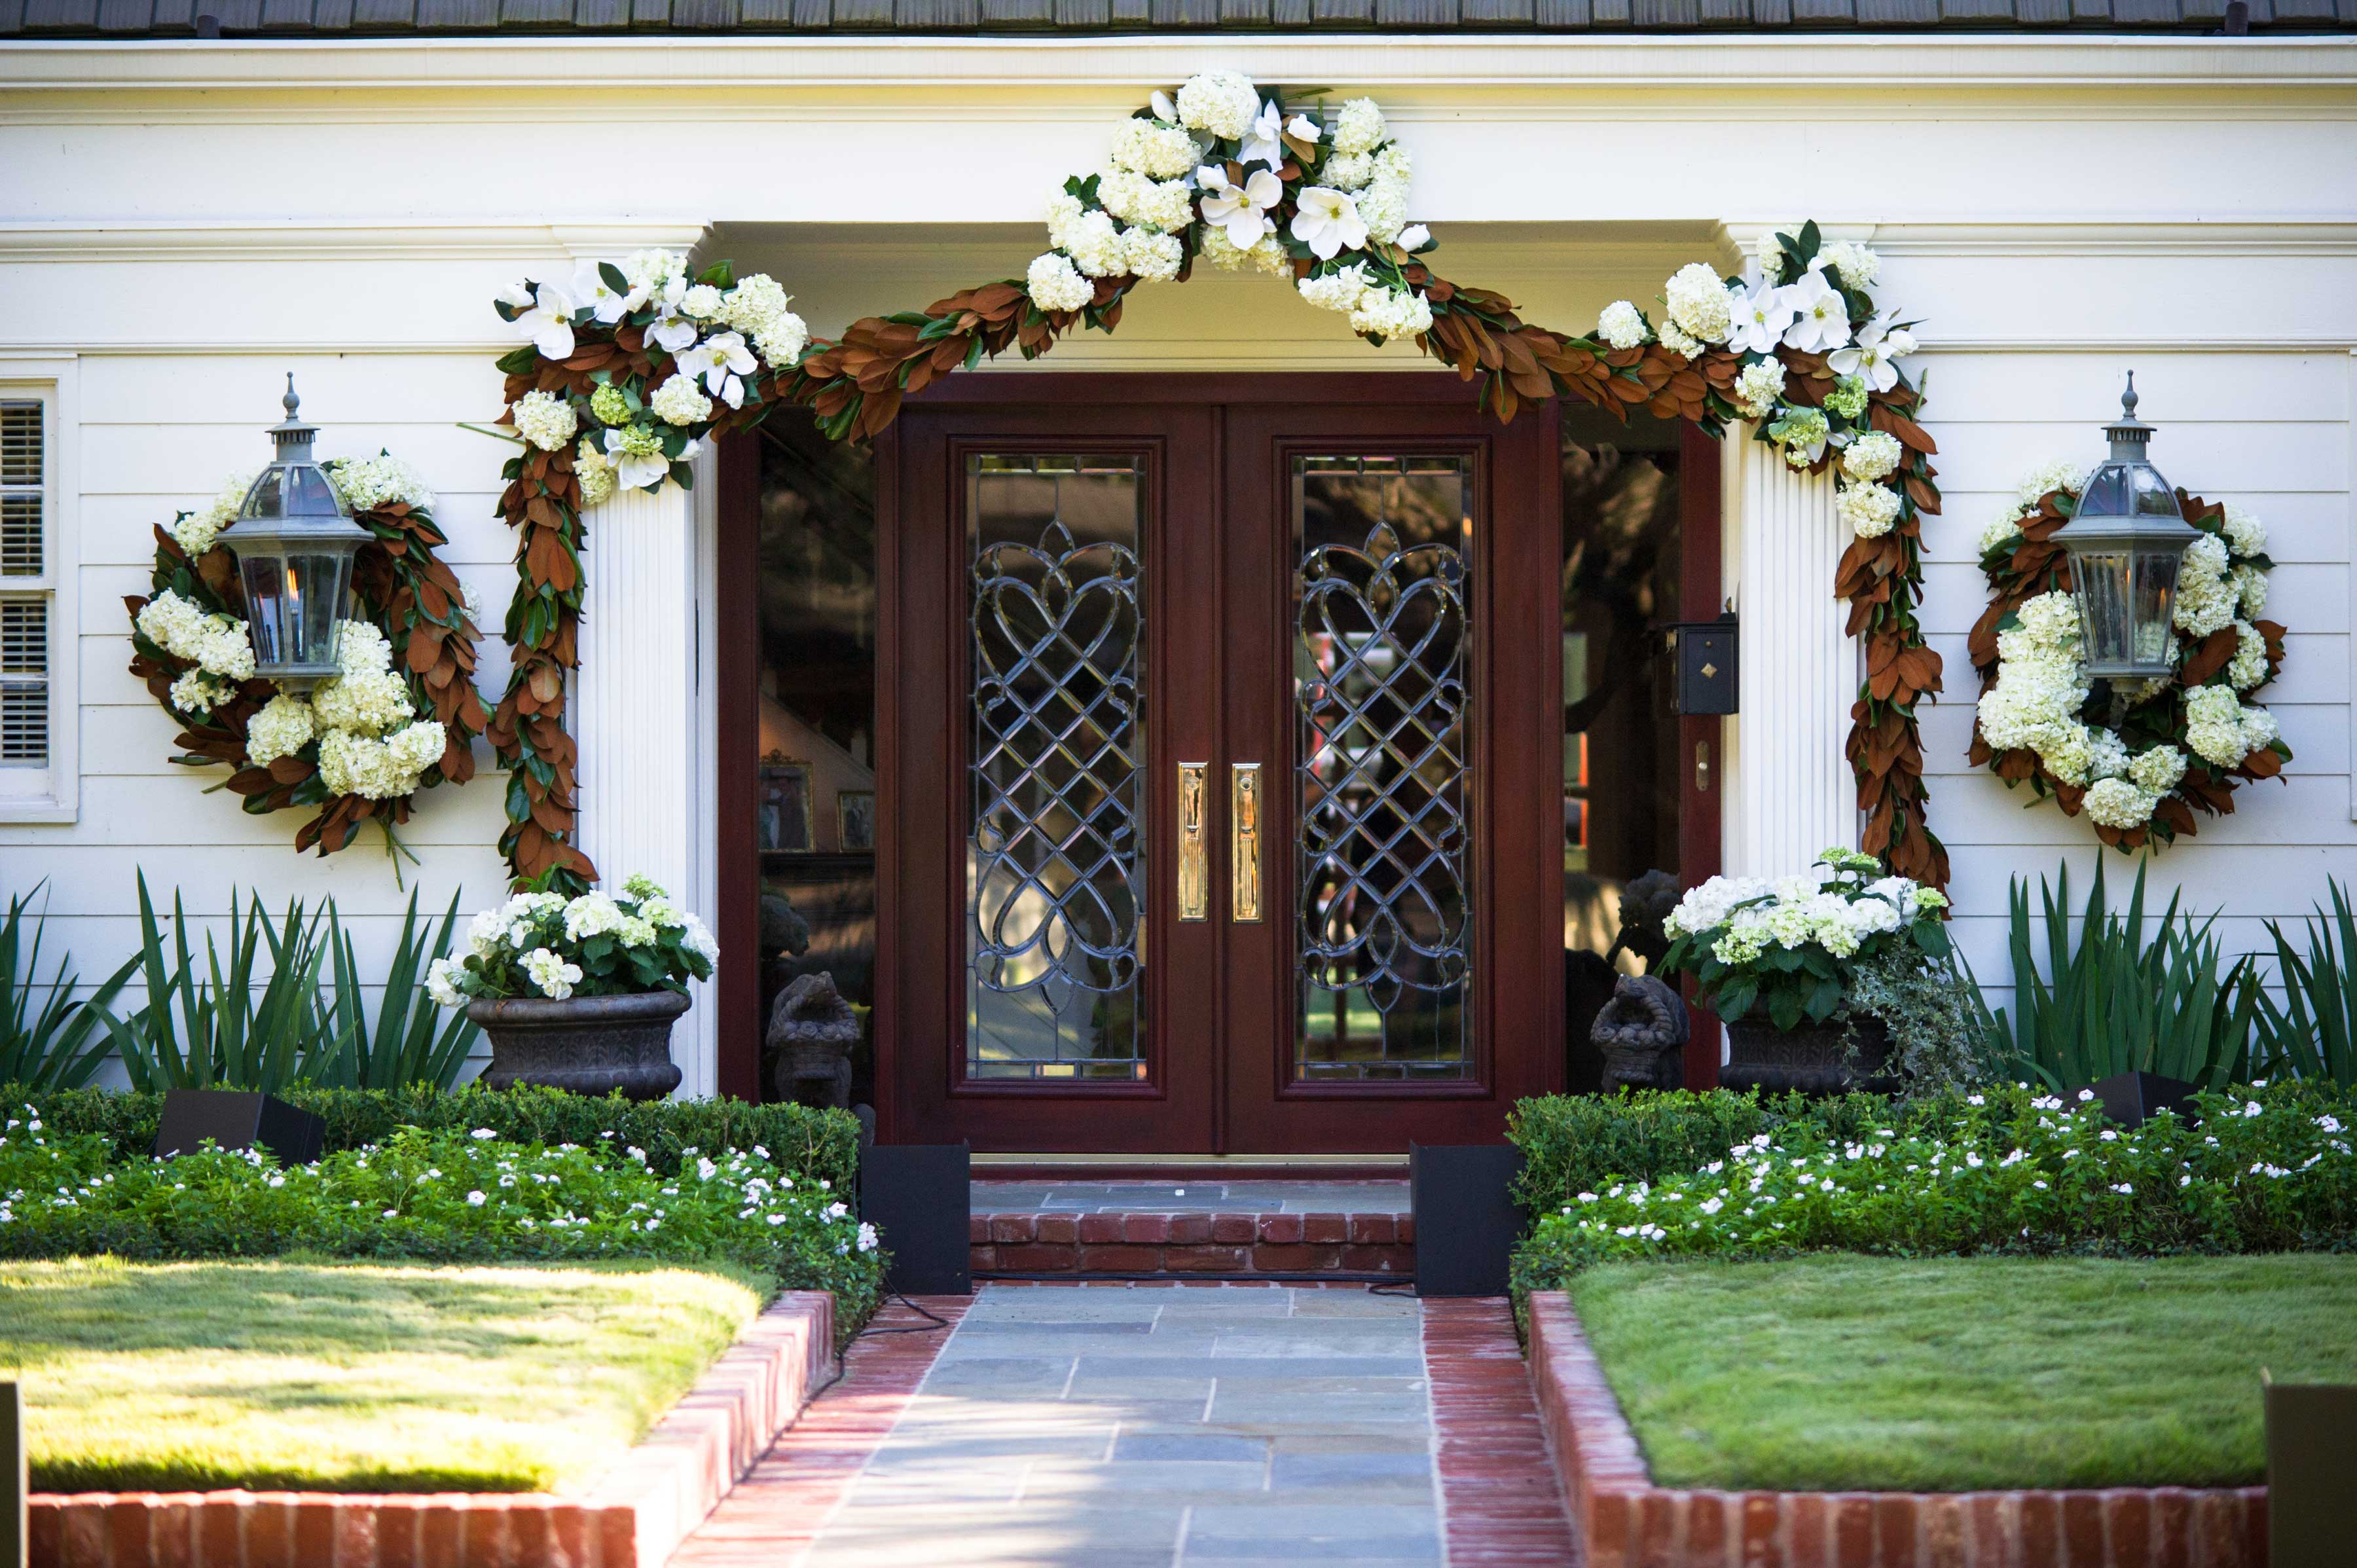 Hydrangea and magnolia leaf wreath decor on house at home wedding